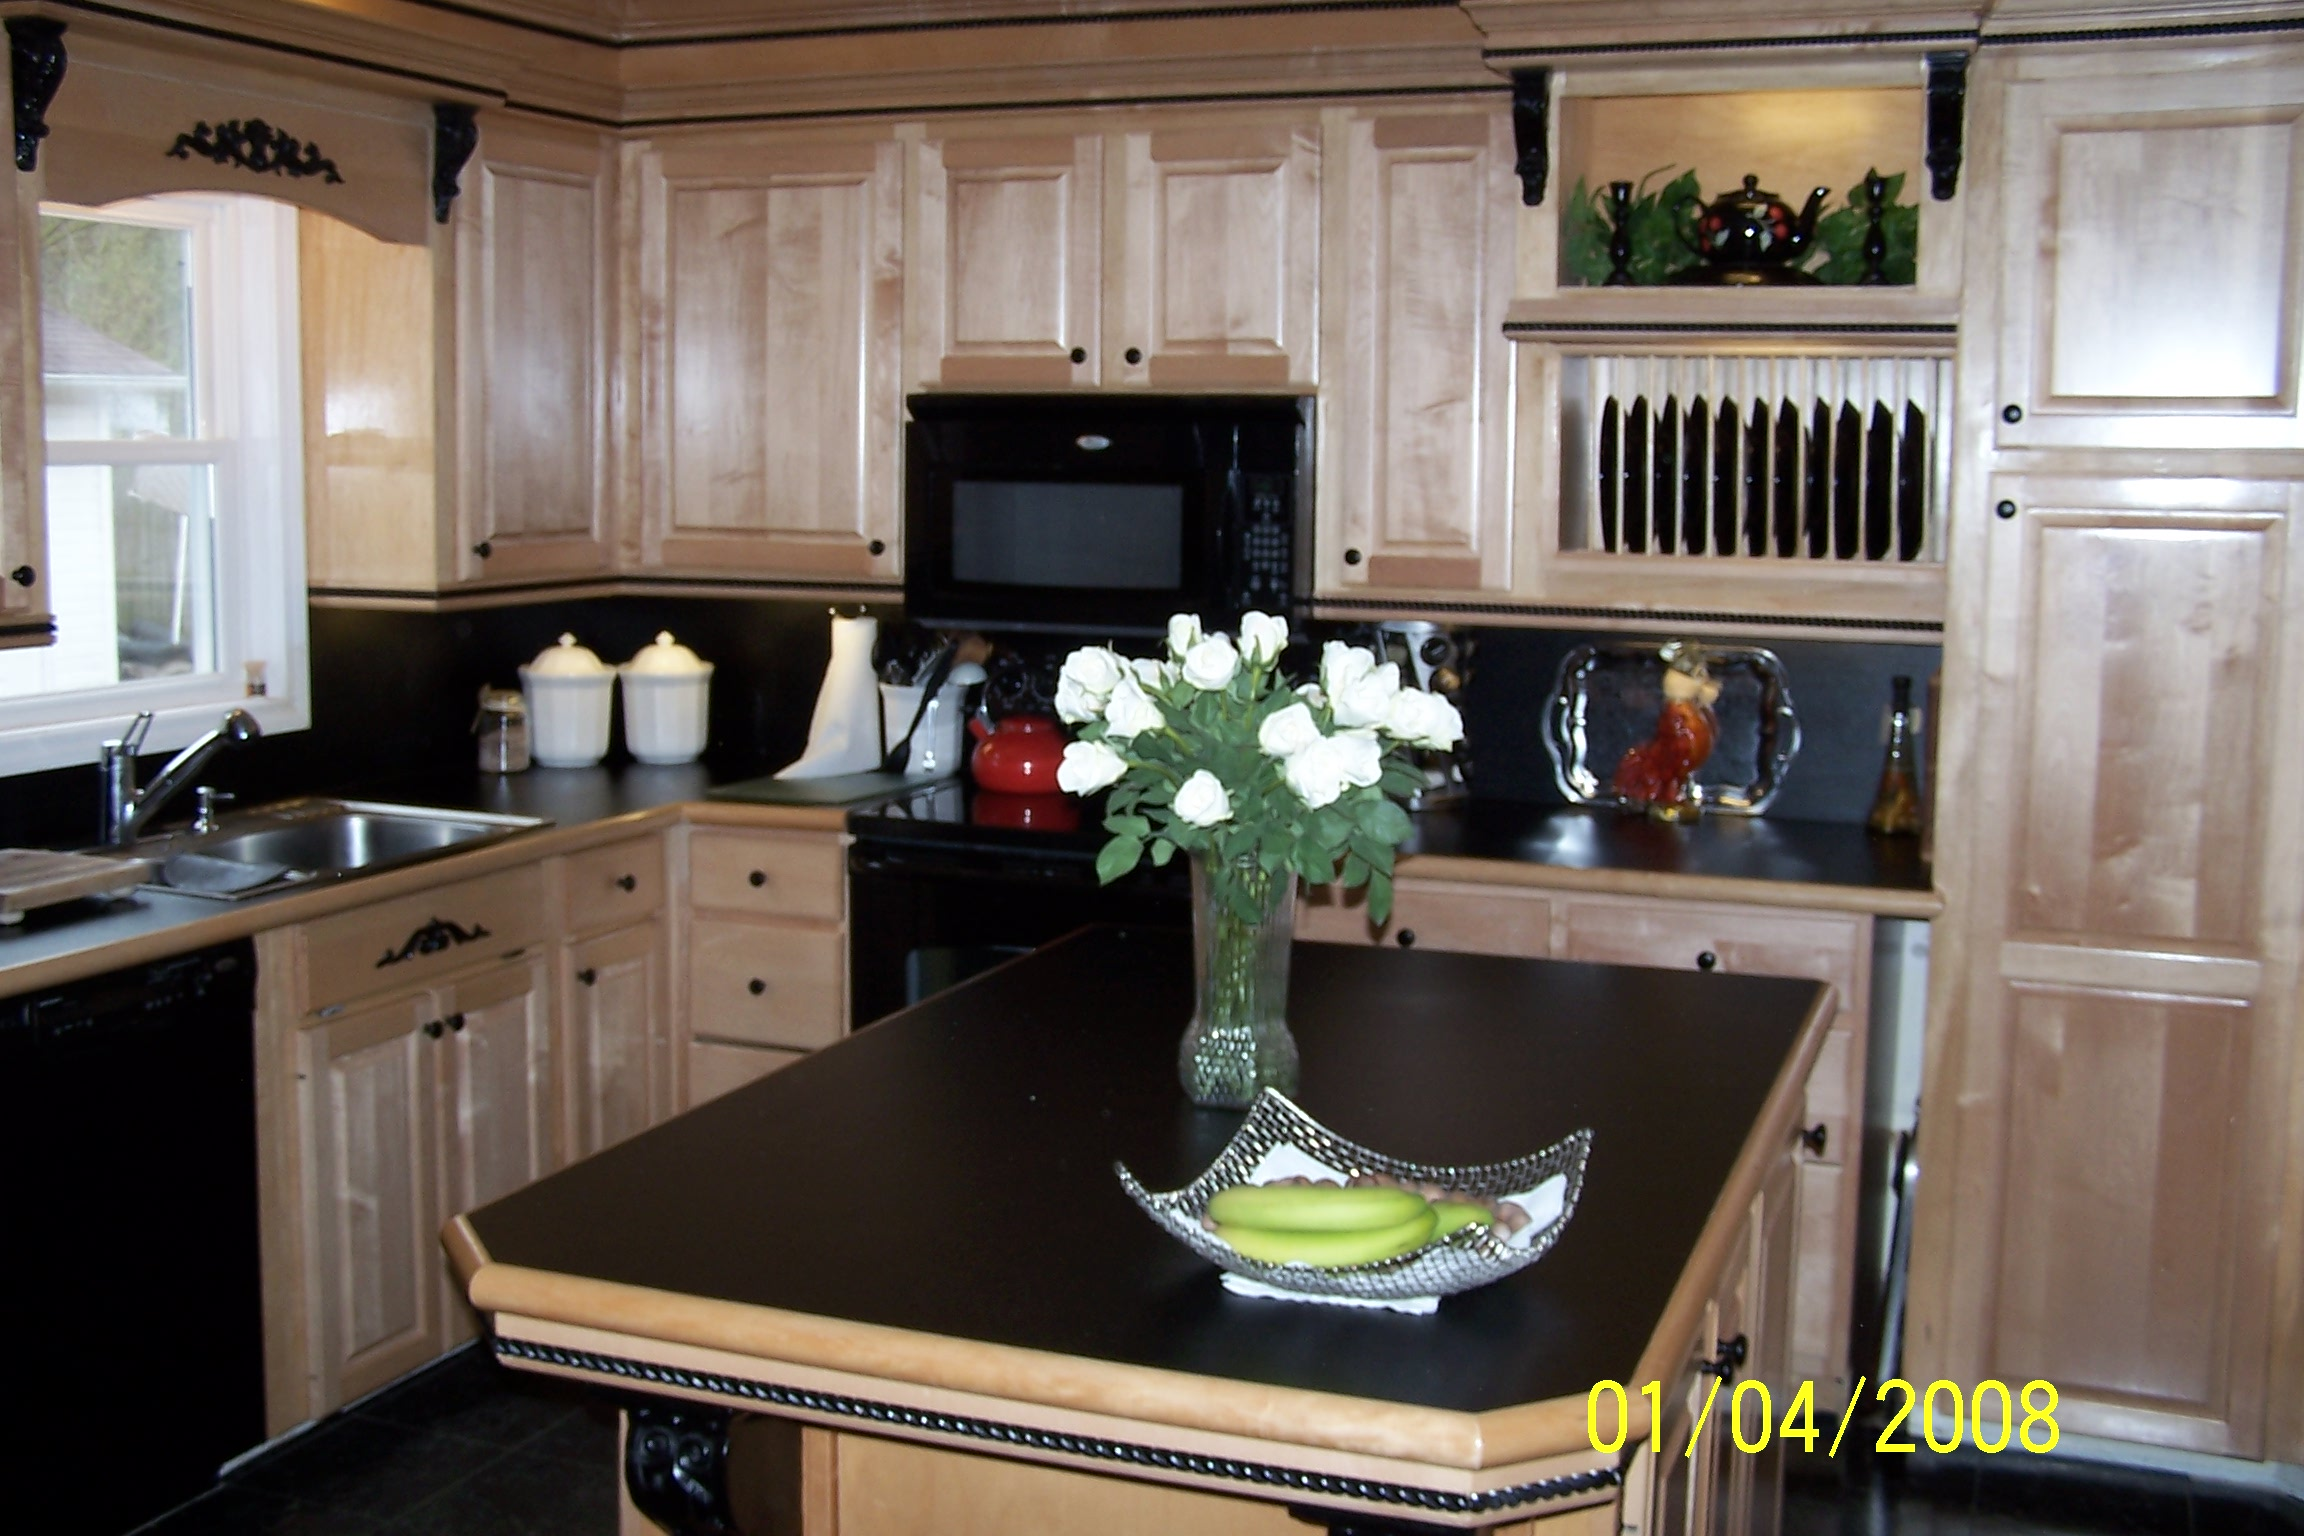 Furniture Cream Kitchen Cabinet Refacing With Black Oven And Sink